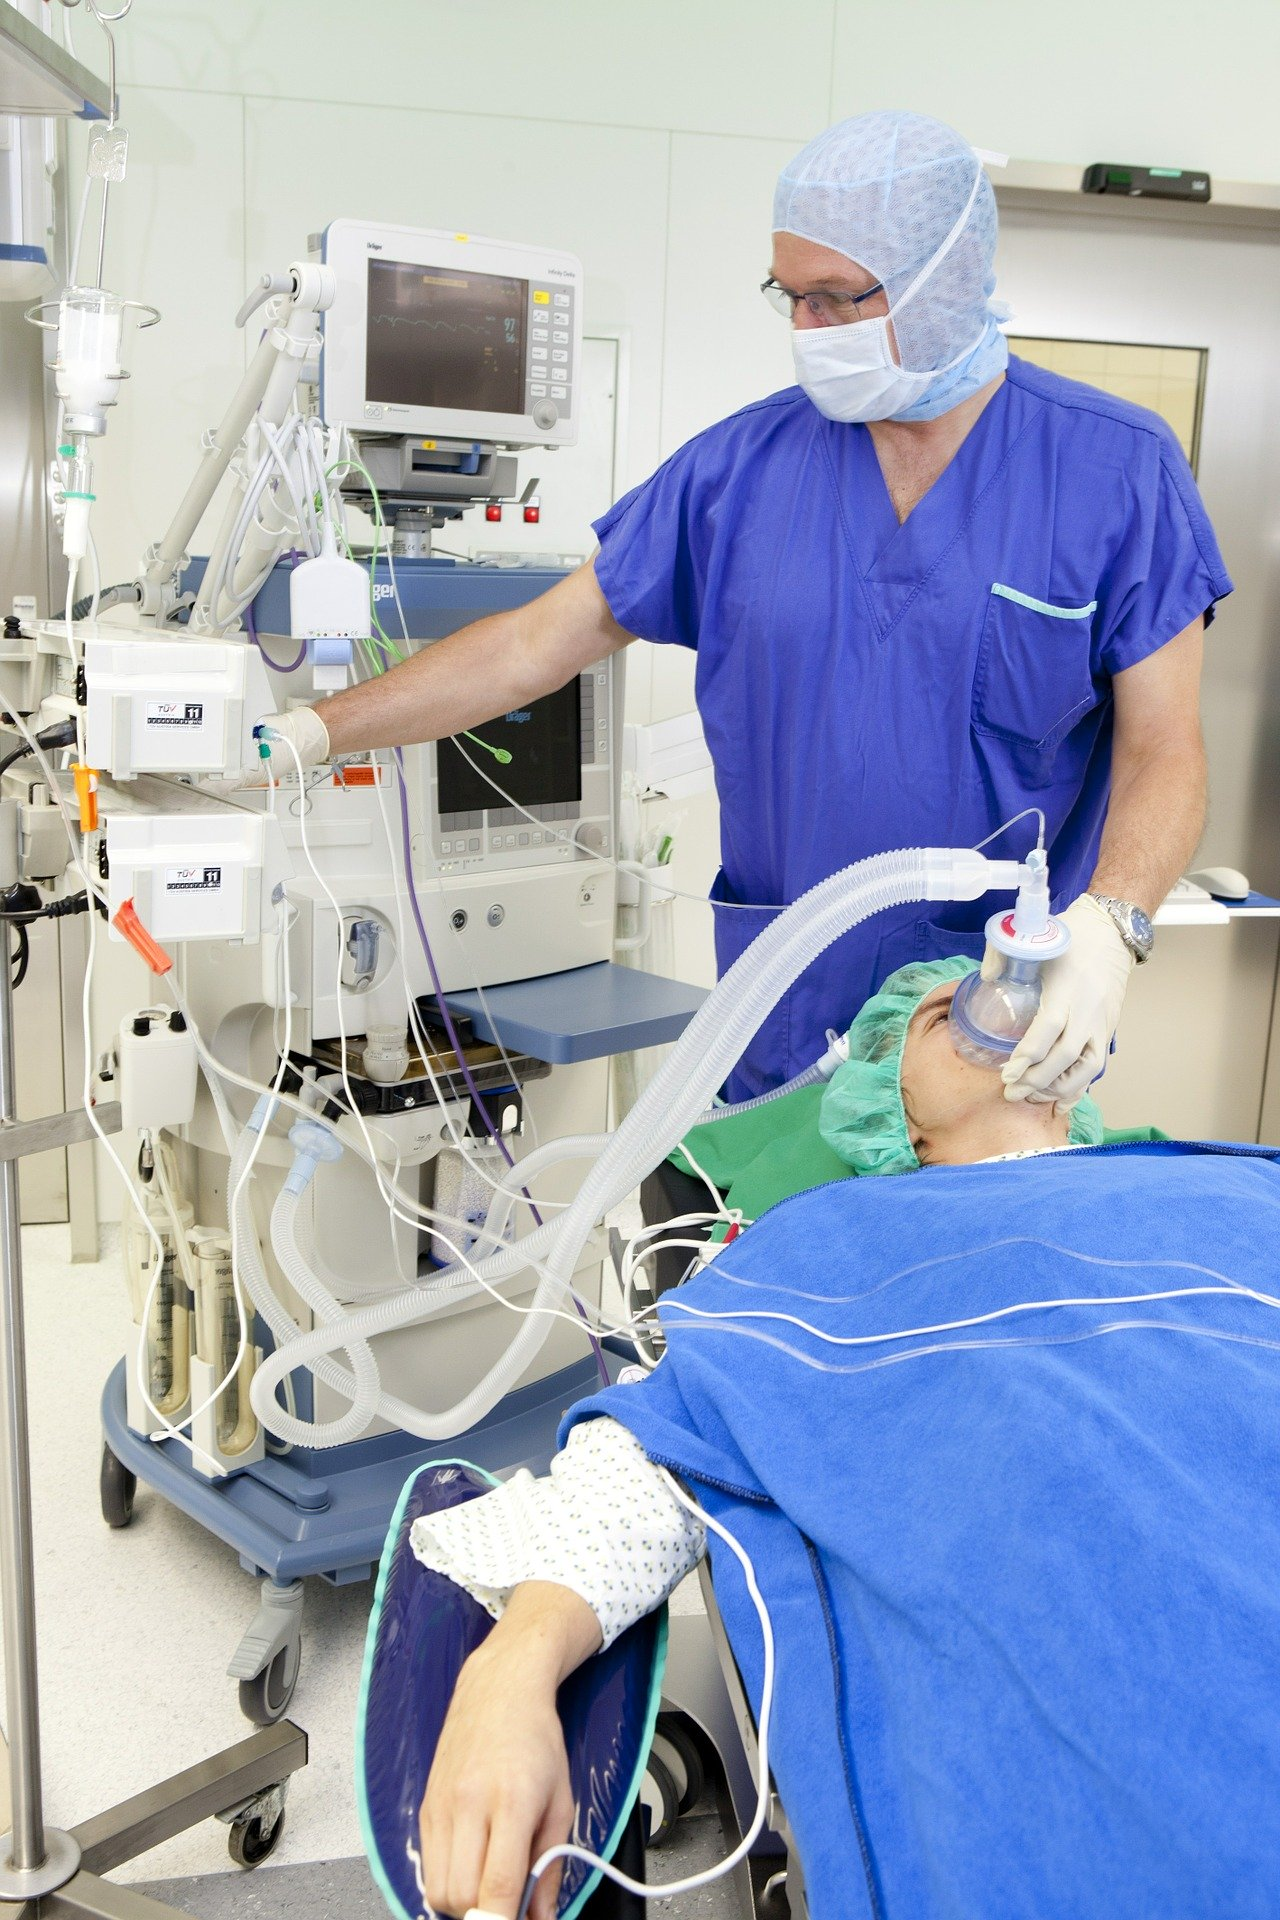 A patient on a ventilator in a hospital.